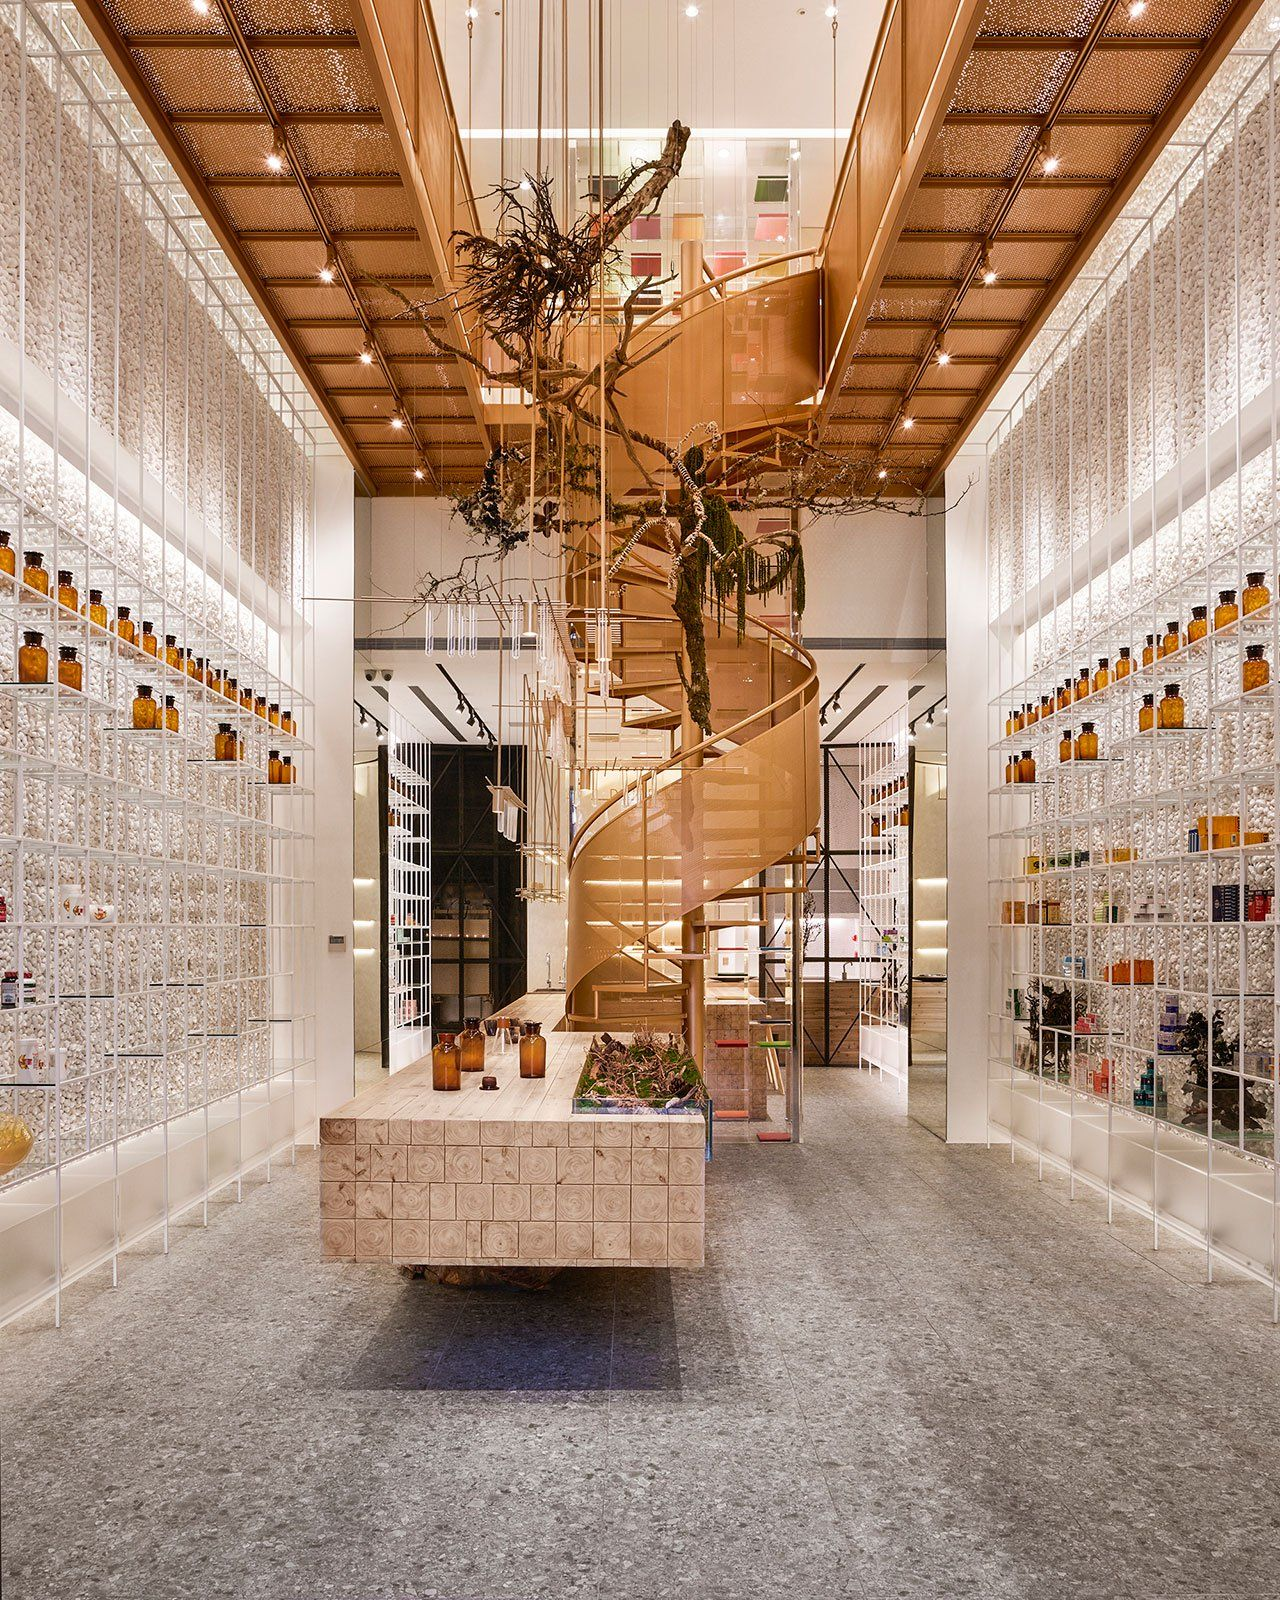 Taiwan Traditional Living Room: Feeling Better: Molecure Pharmacy In Taiwan By Waterfrom